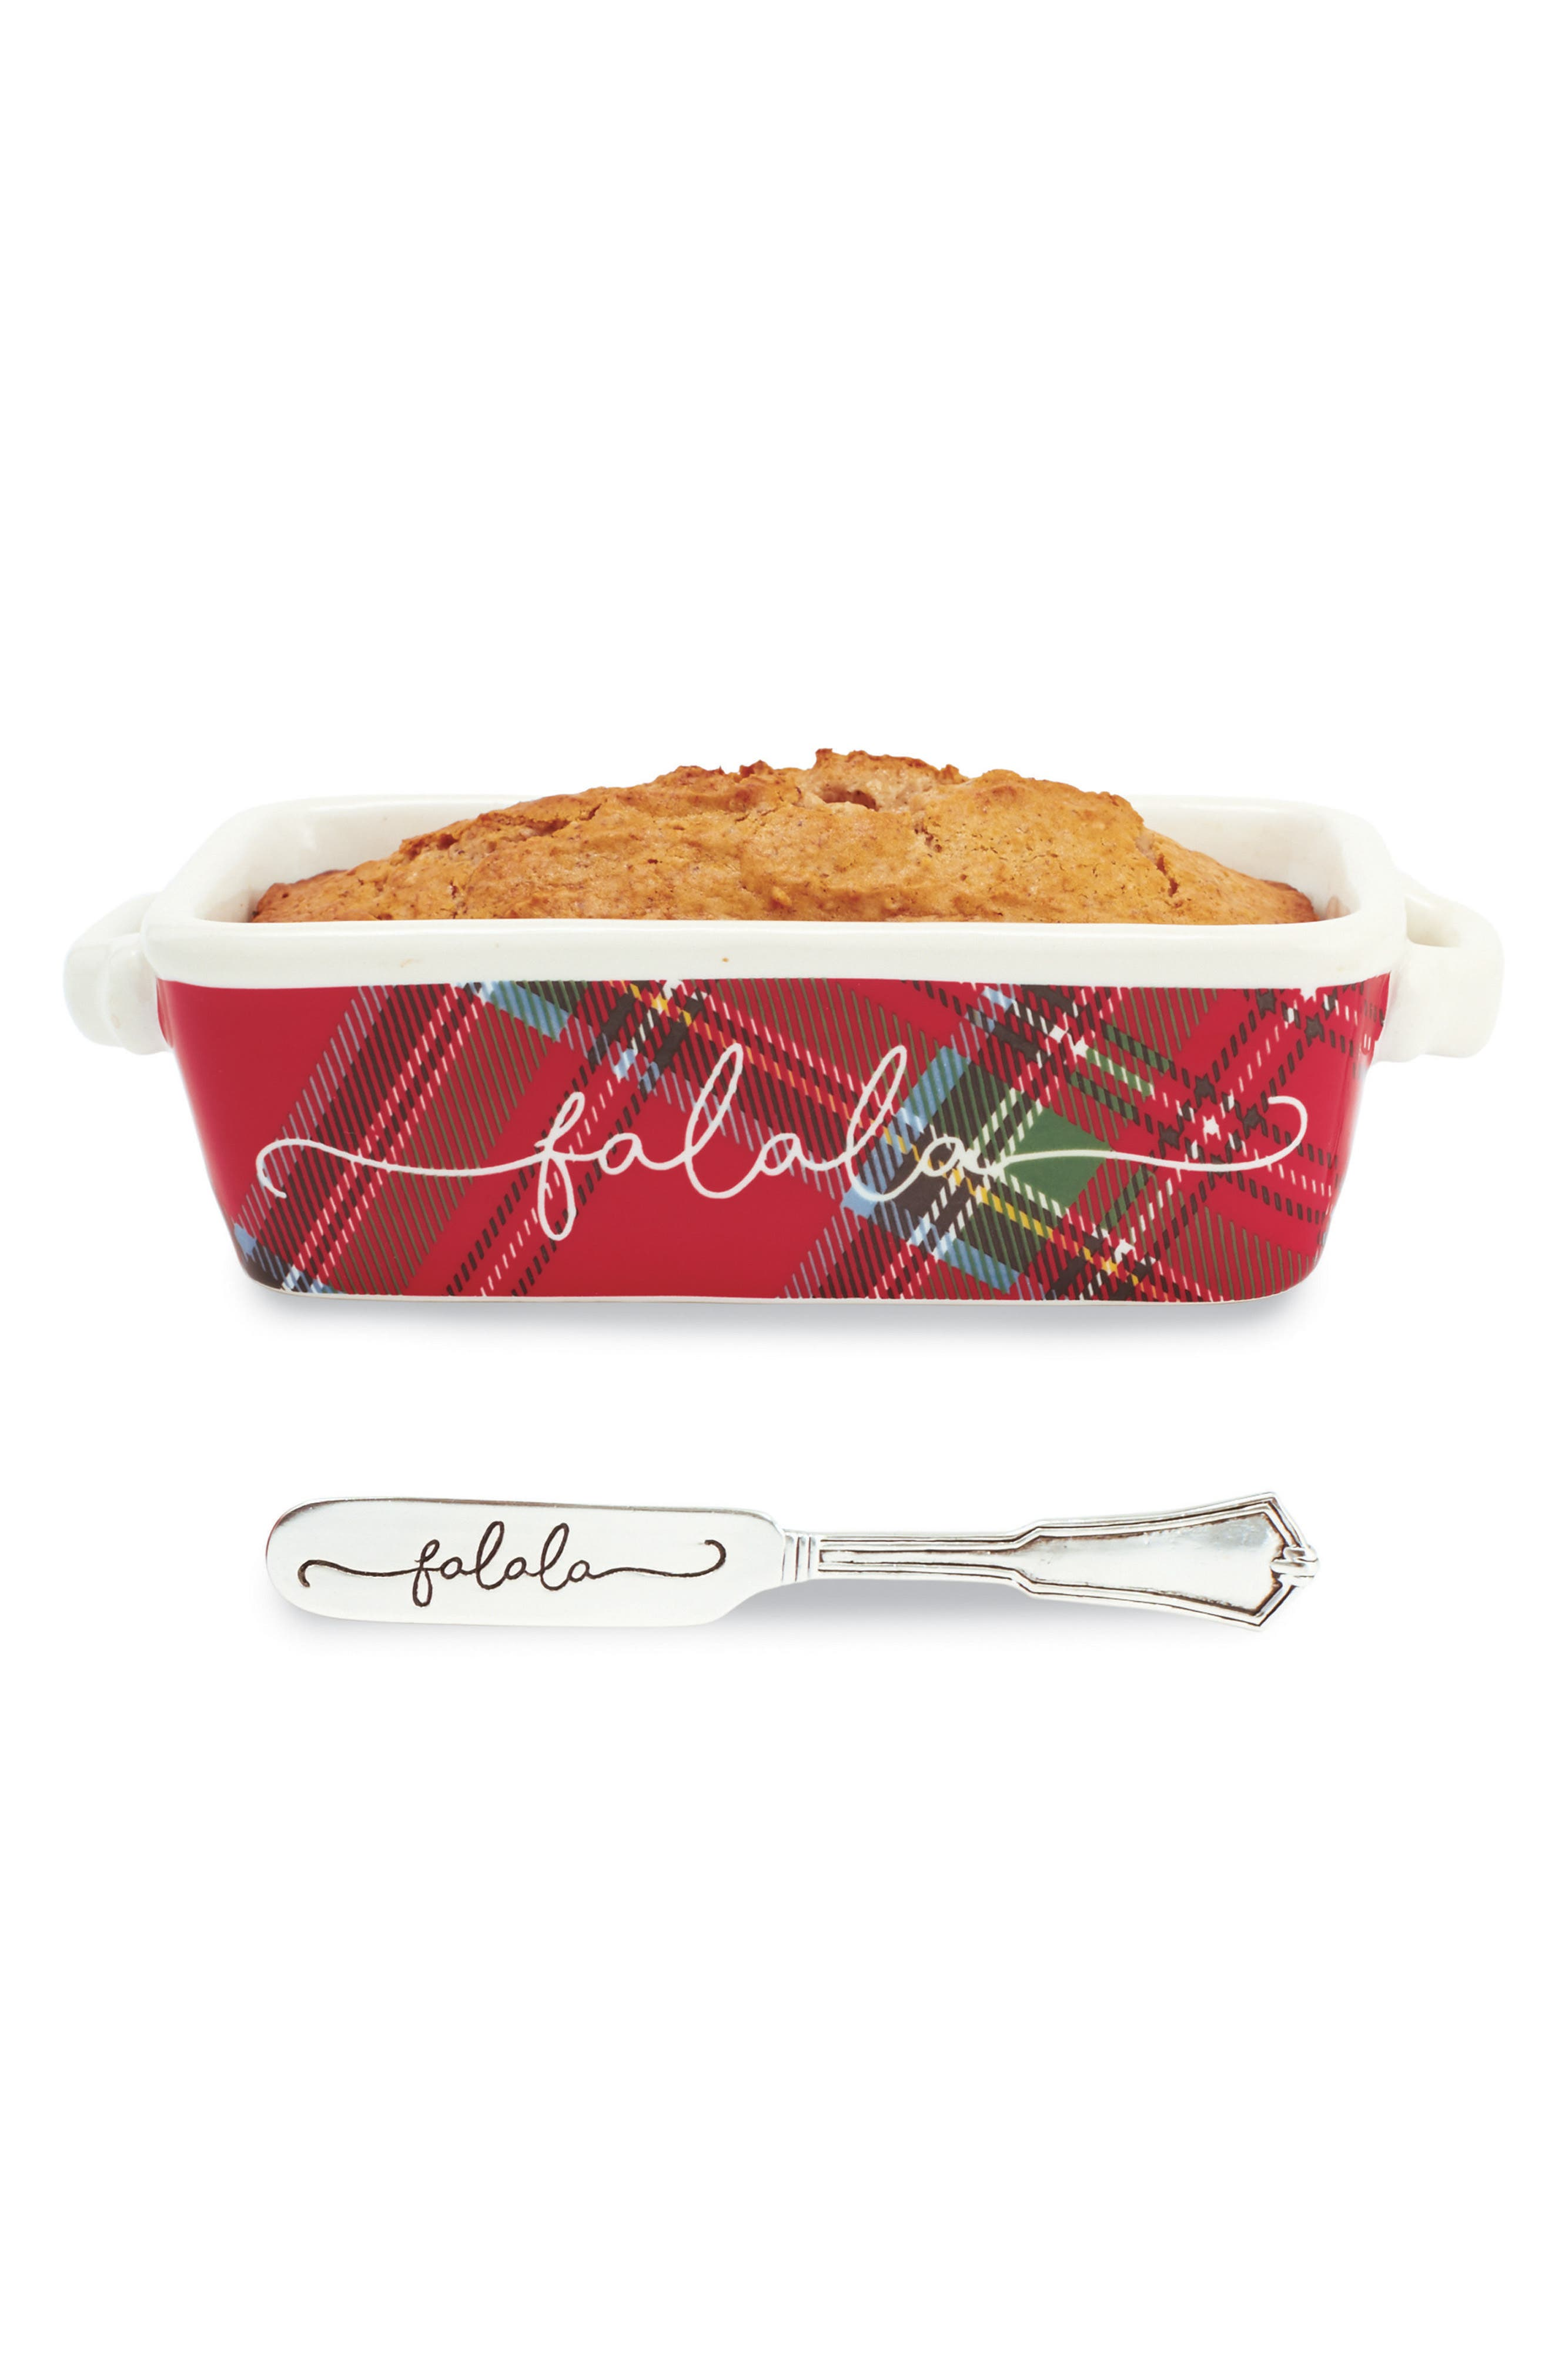 Main Image - Mud Pie Fa La La Tartan Ceramic Mini Loaf Pan & Spreader